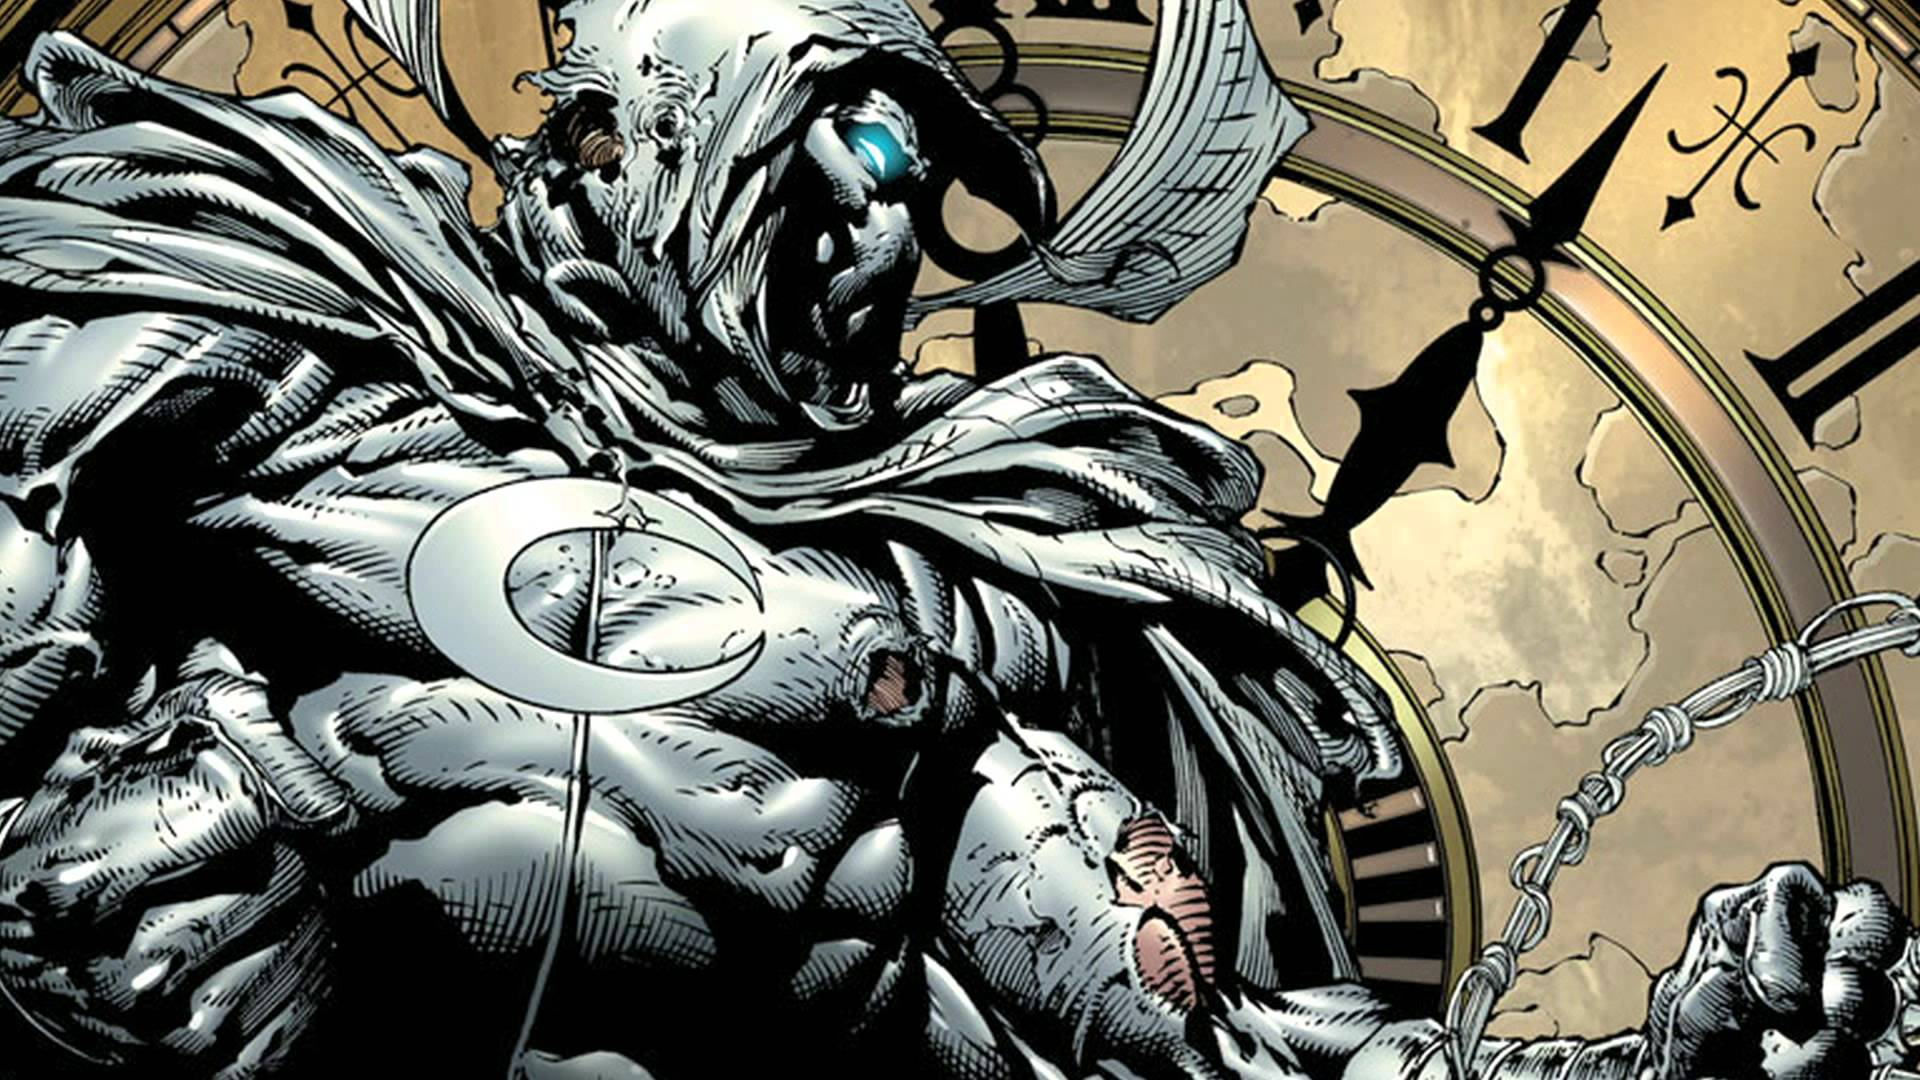 Marvel Moon Knight series headed to Disney Plus